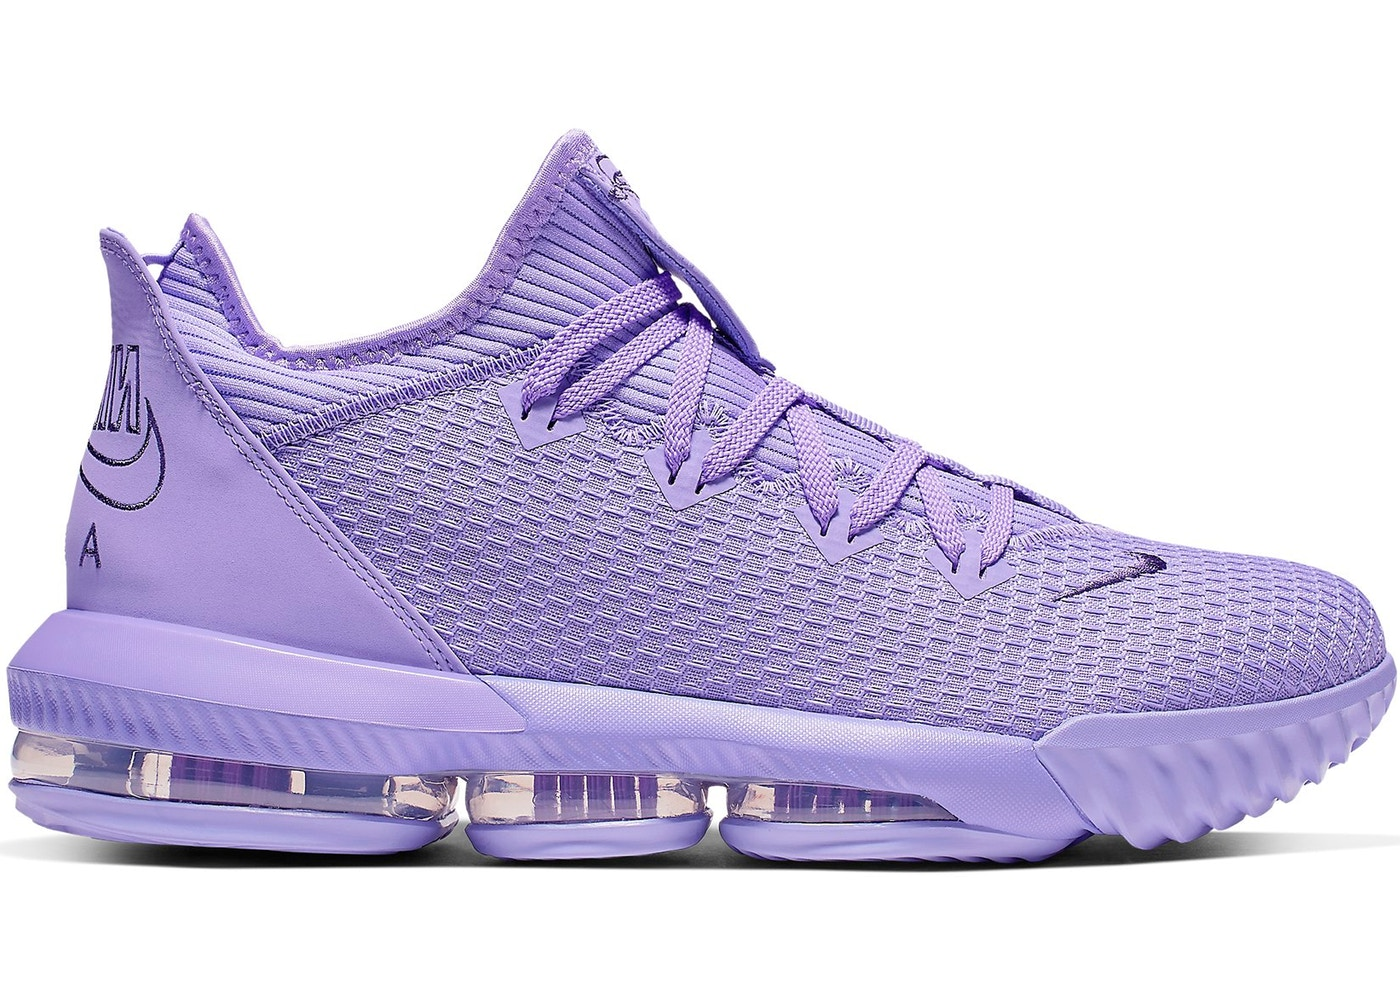 adidas boost violette